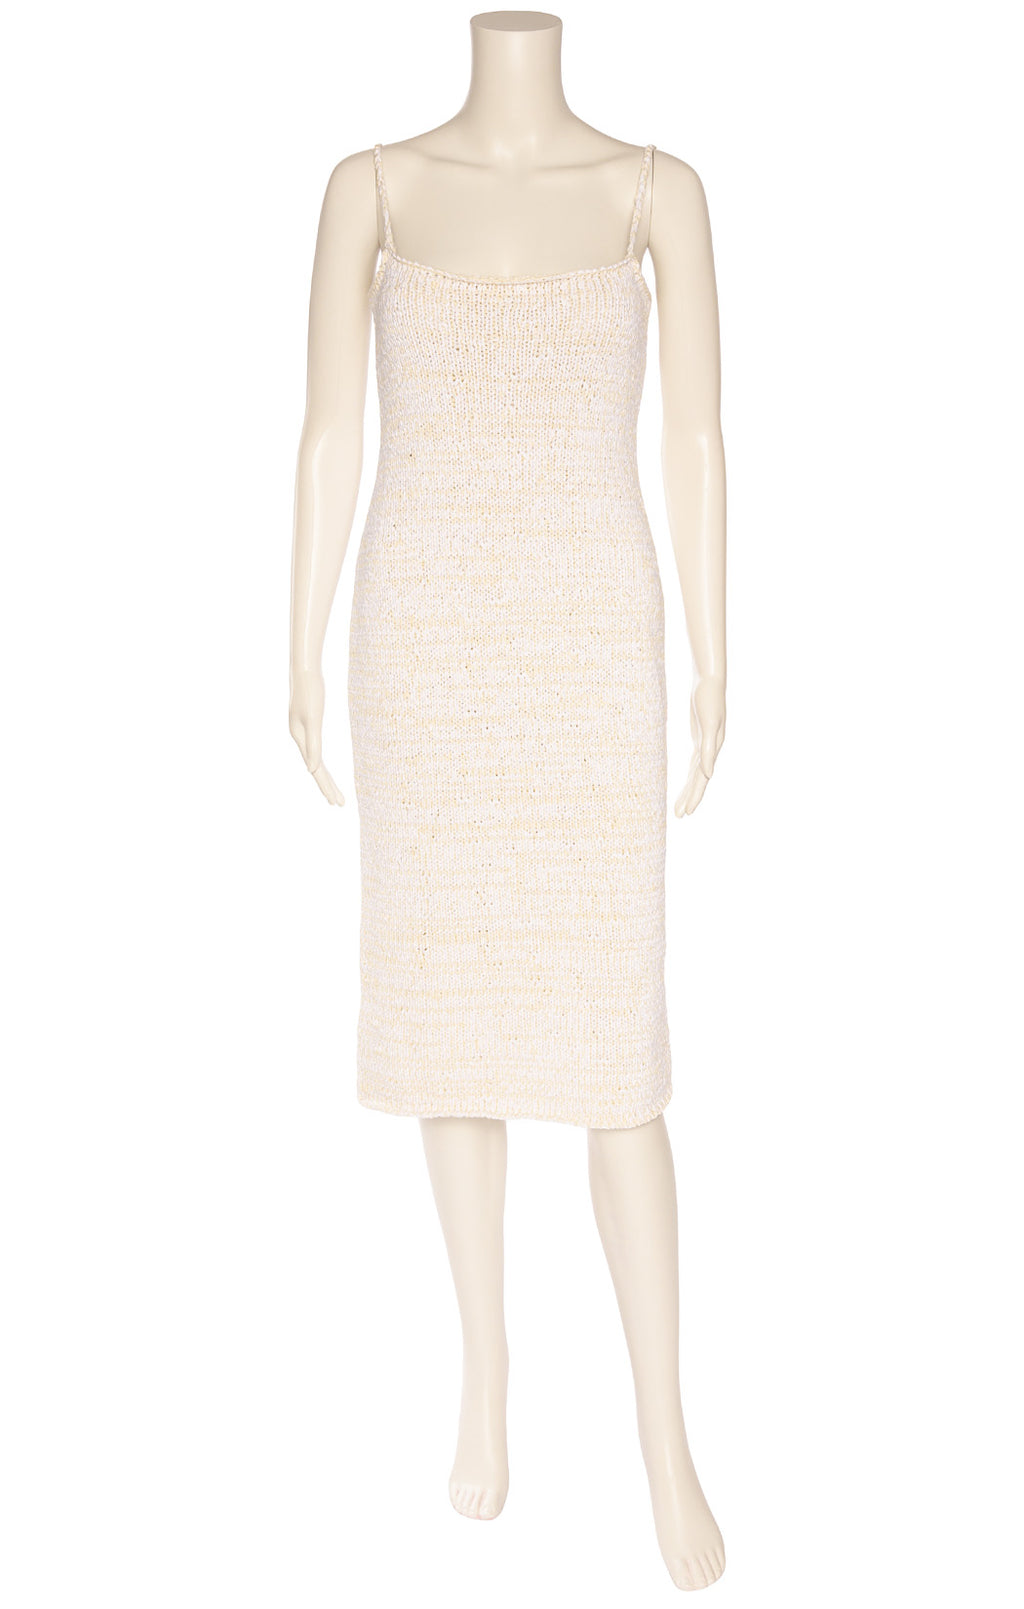 BOTTEGA VENETA with tags Dress Size: Small